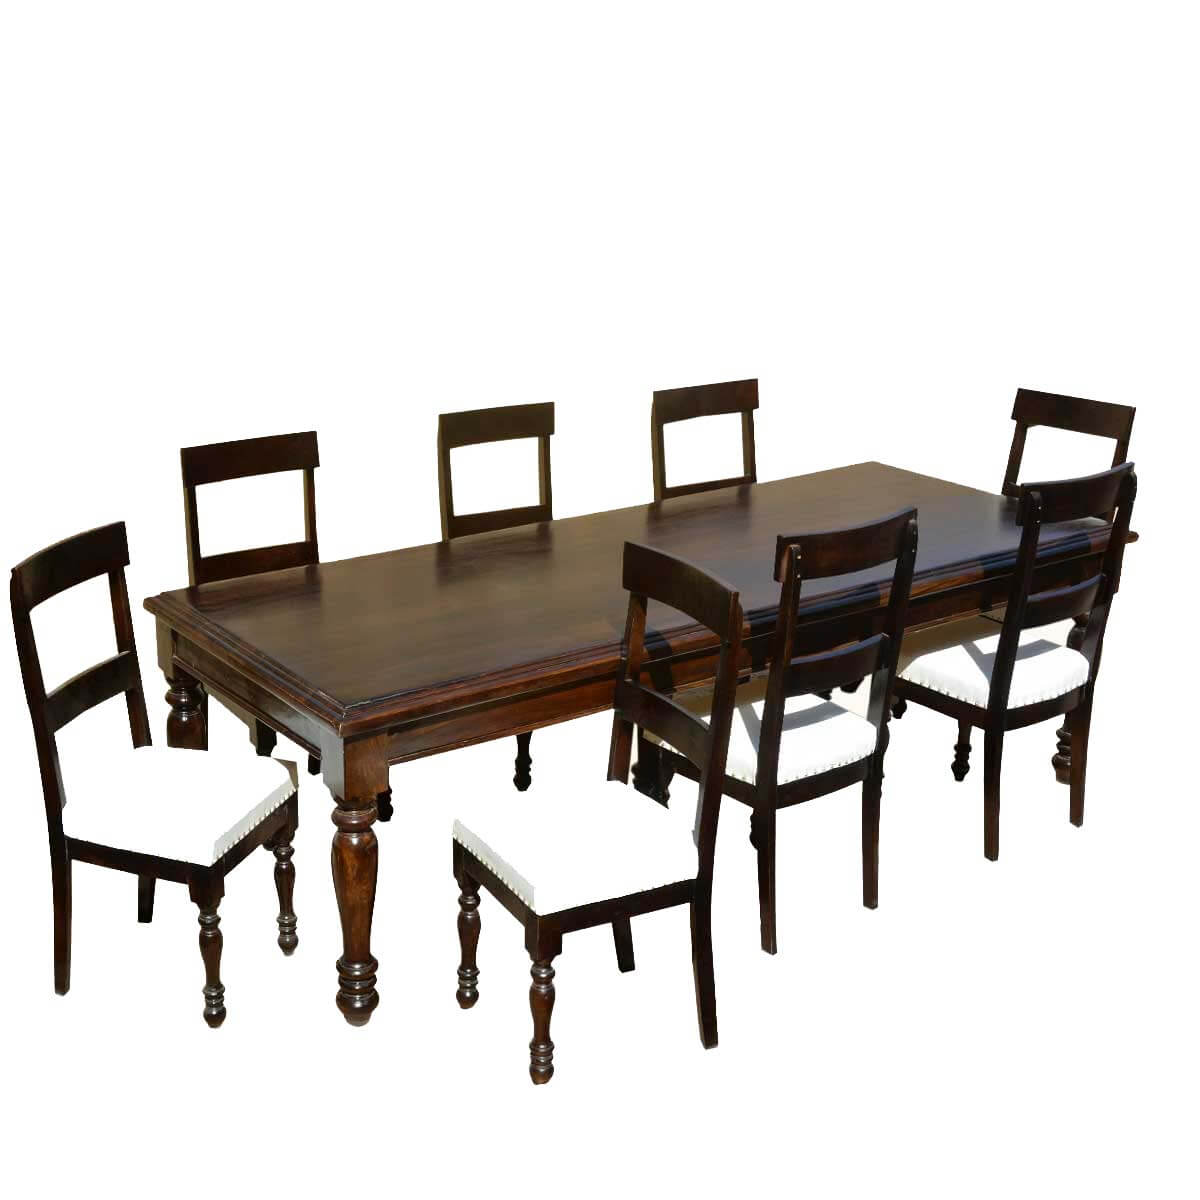 American acacia wood dining table leather upholstered chairs for Dining table leather chairs